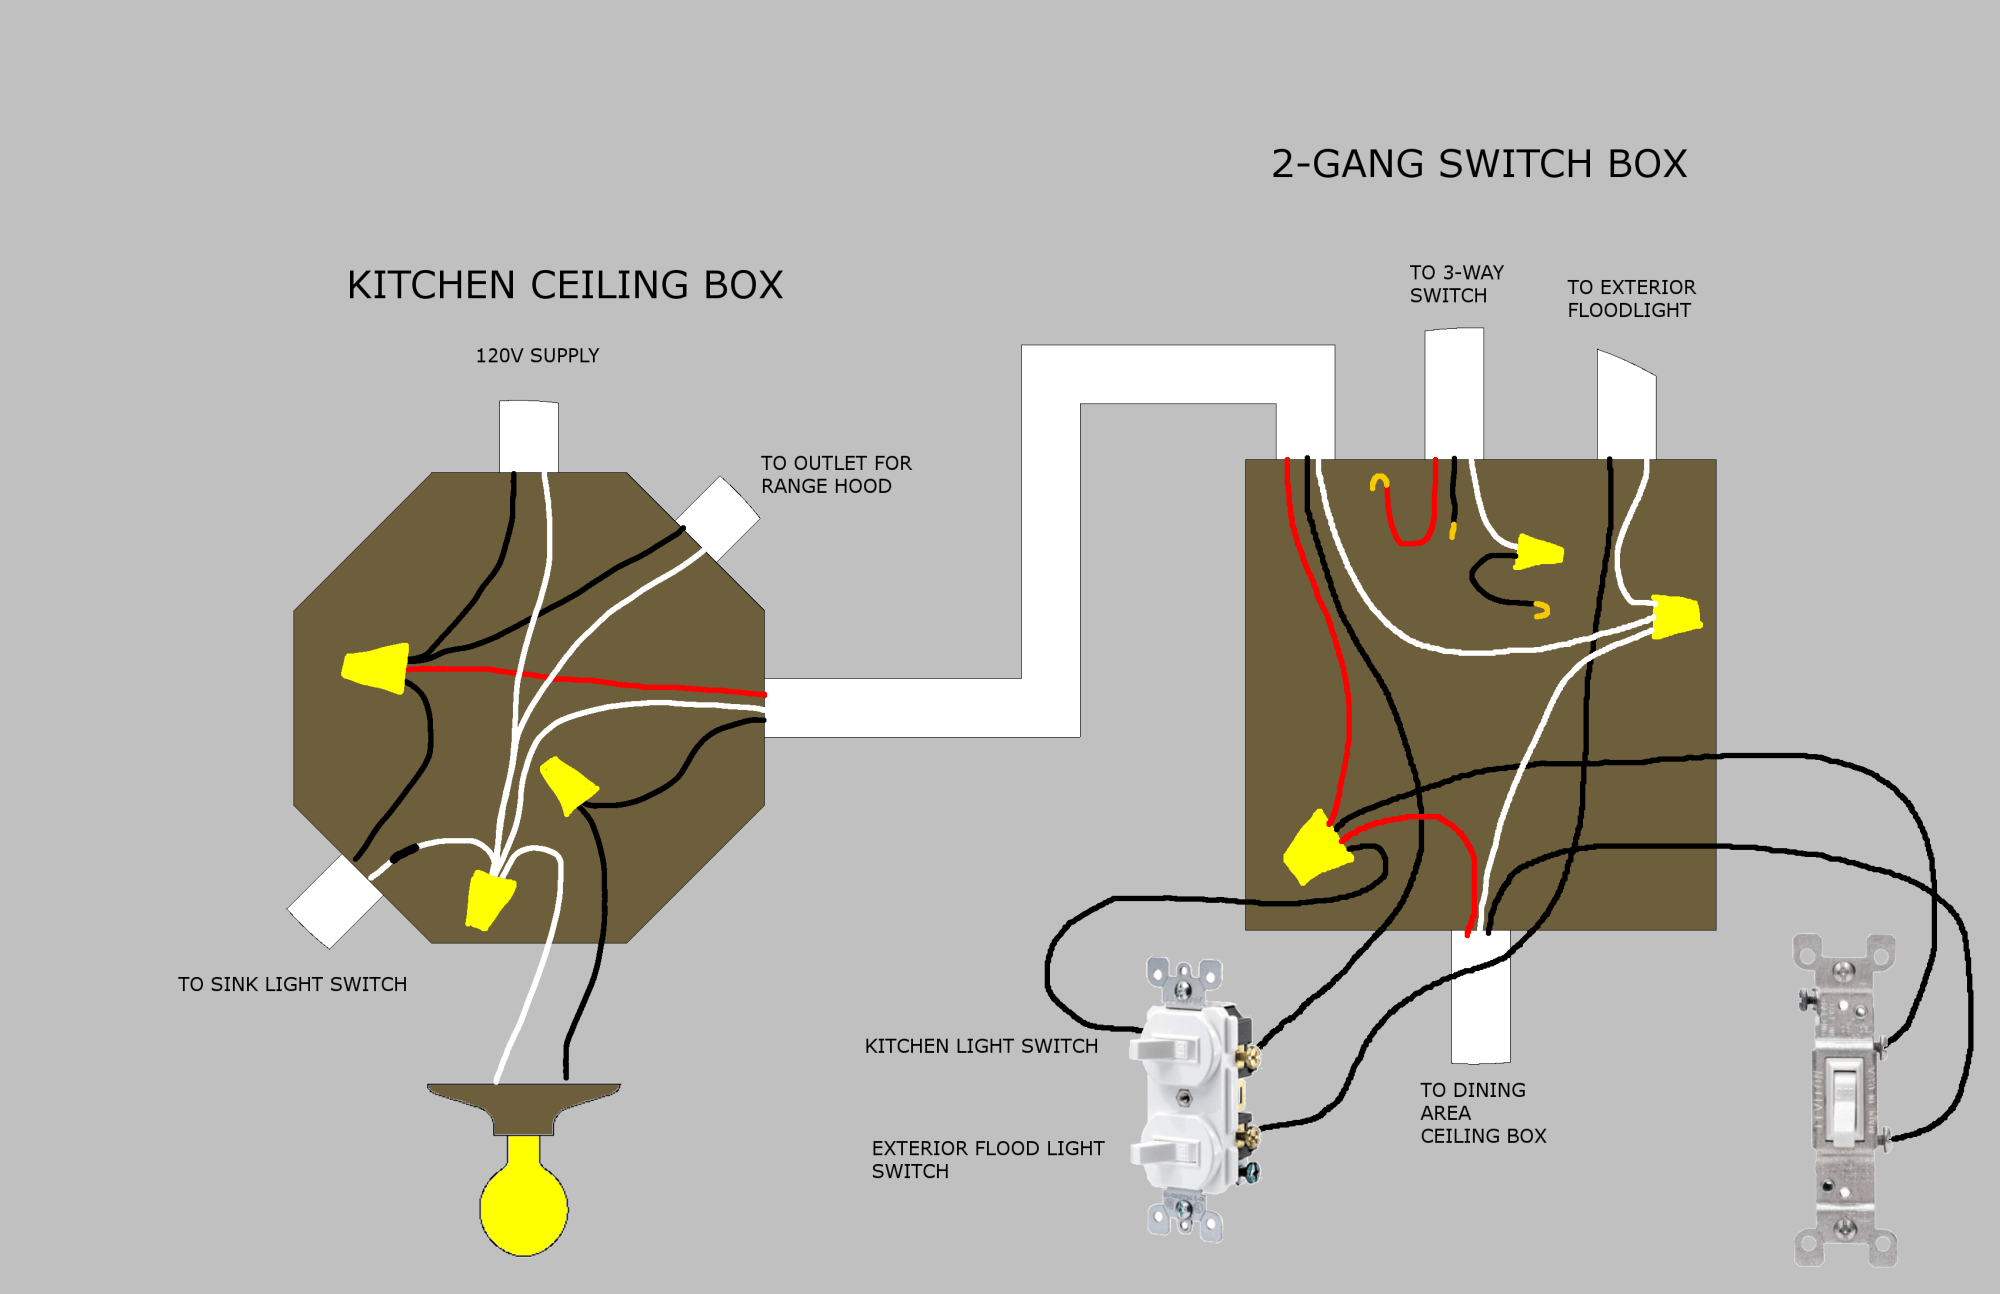 hight resolution of electrical is this ceiling box wiring correct and how can i 3 three way switch diagram 3 way switch wiring diagram for ceiling lights